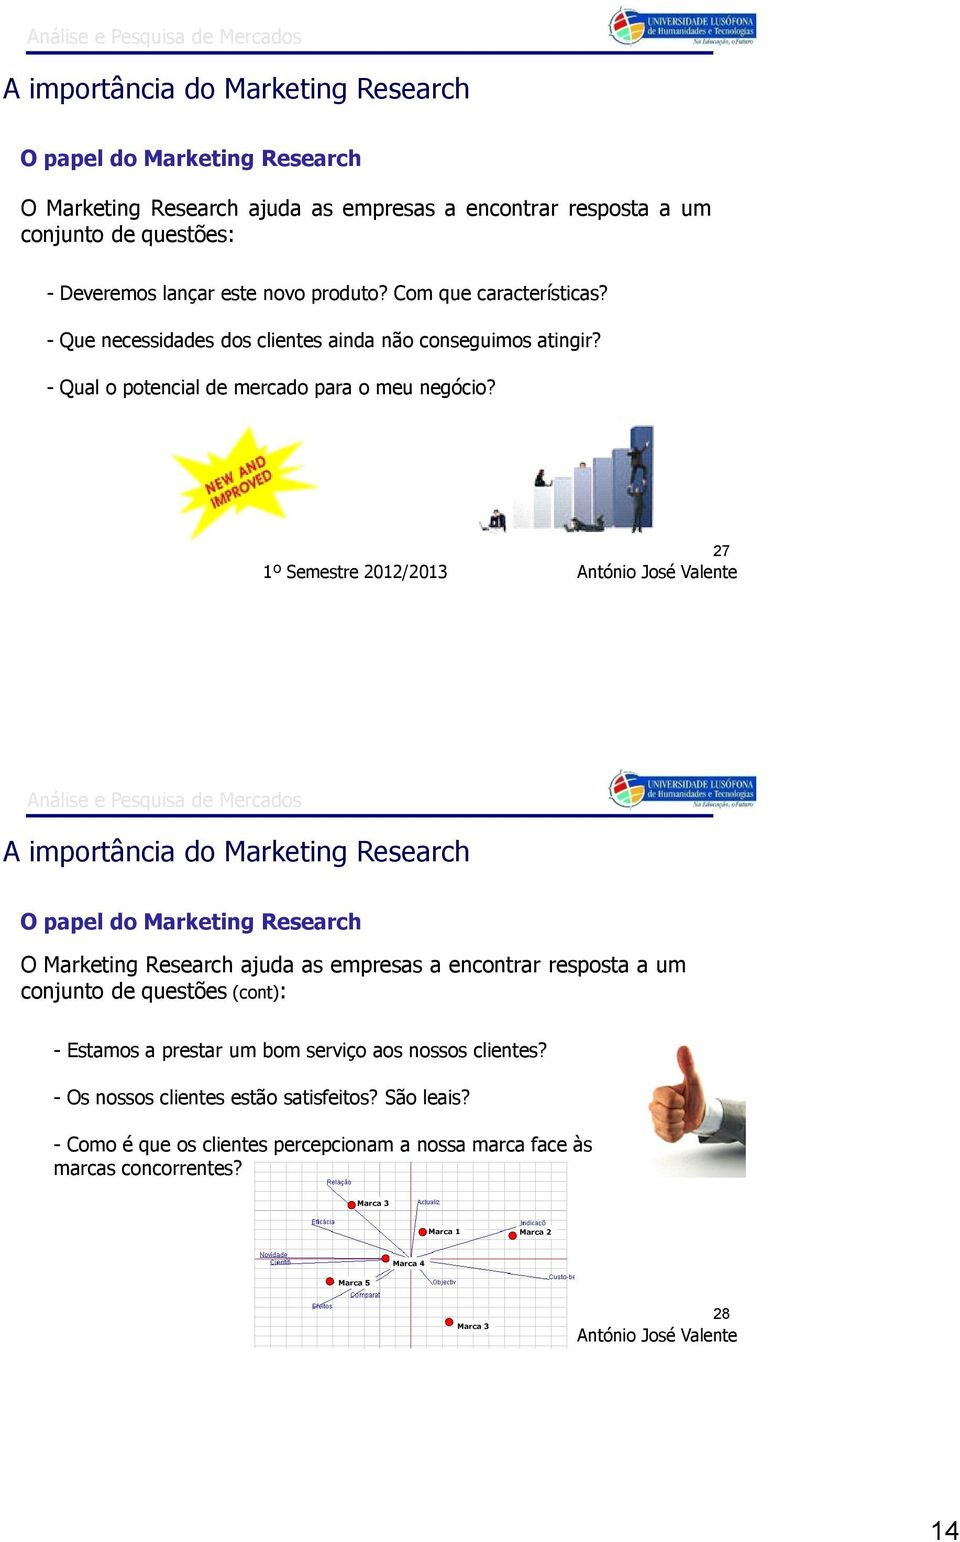 27 A importância do Marketing Research O papel do Marketing Research O Marketing Research ajuda as empresas a encontrar resposta a um conjunto de questões (cont): - Estamos a prestar